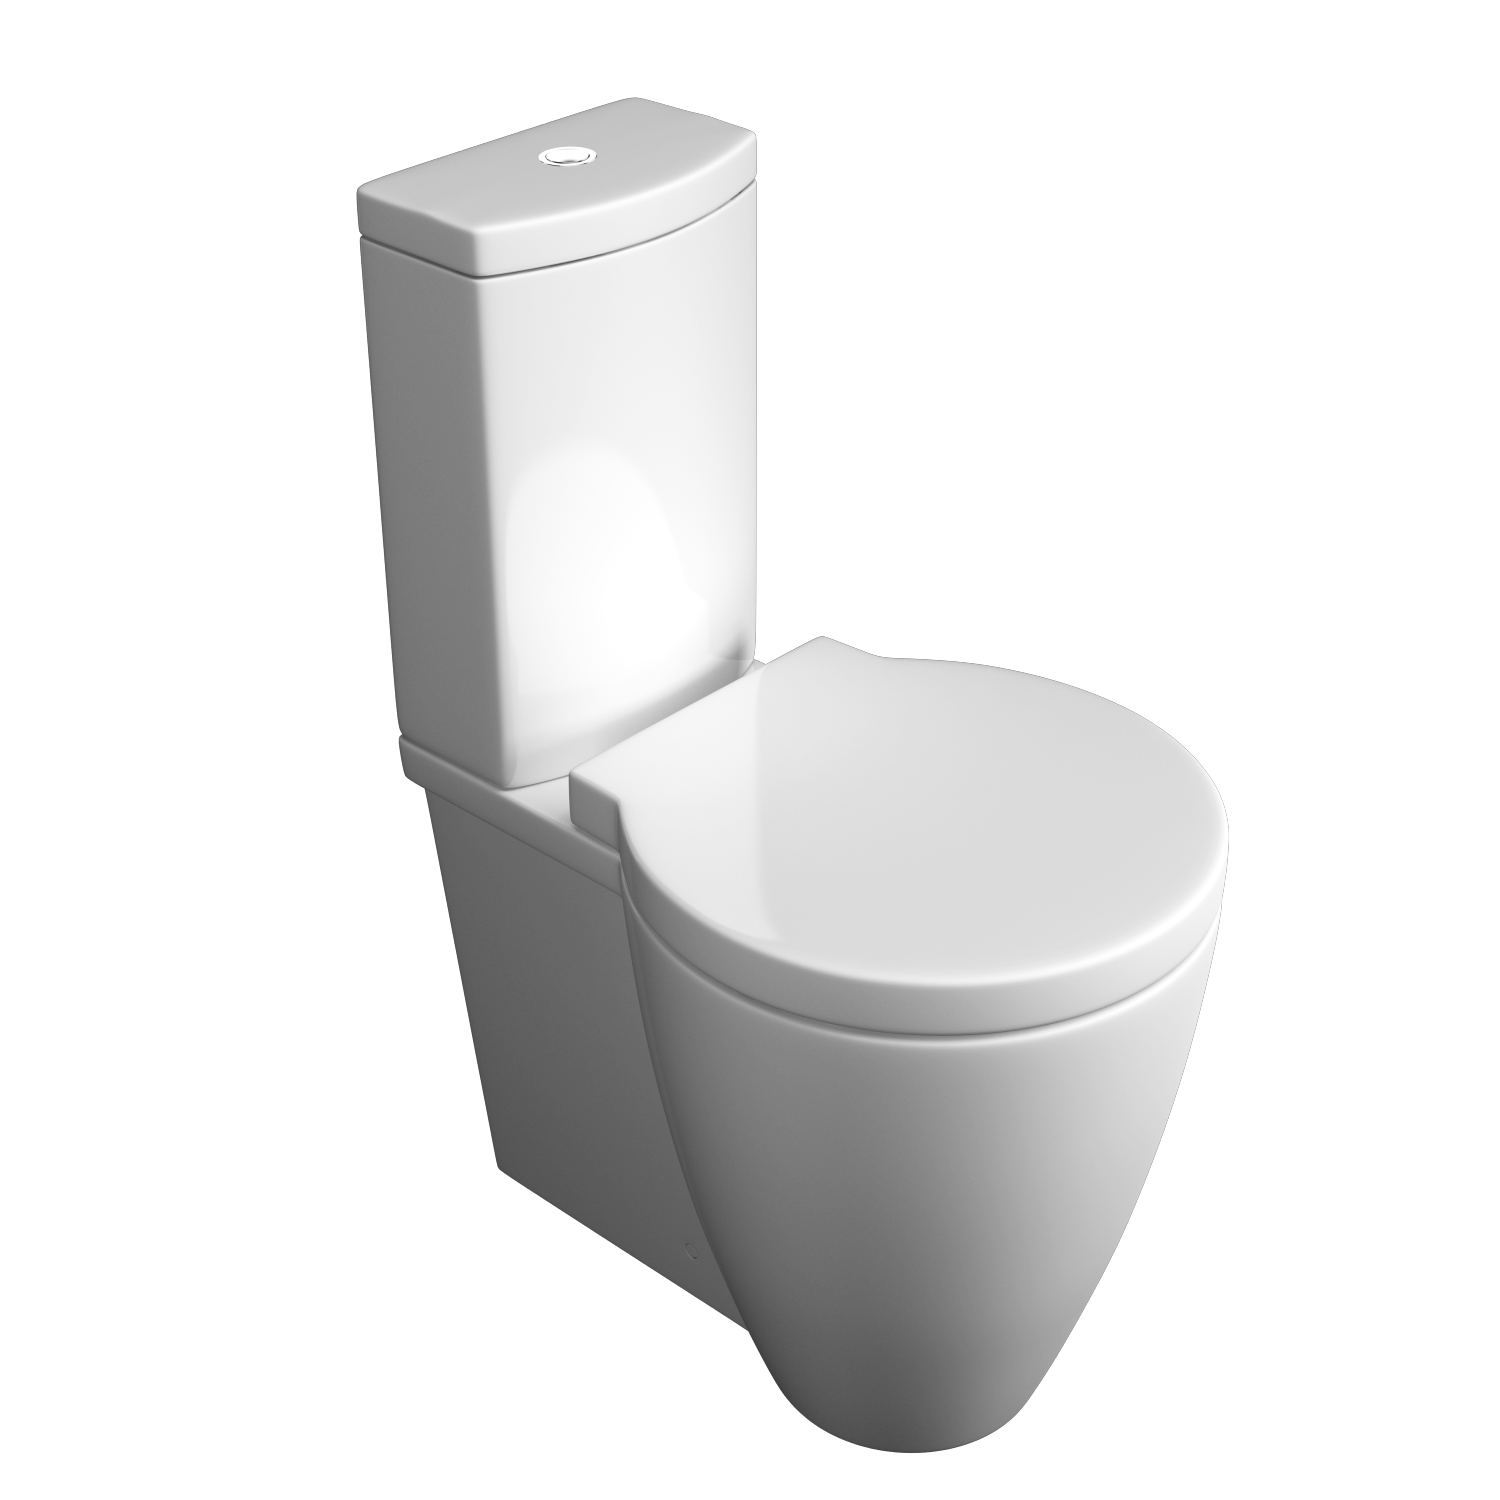 K-Vit Milano Close Coupled WC Pan & Cistern (Seat Not Included)